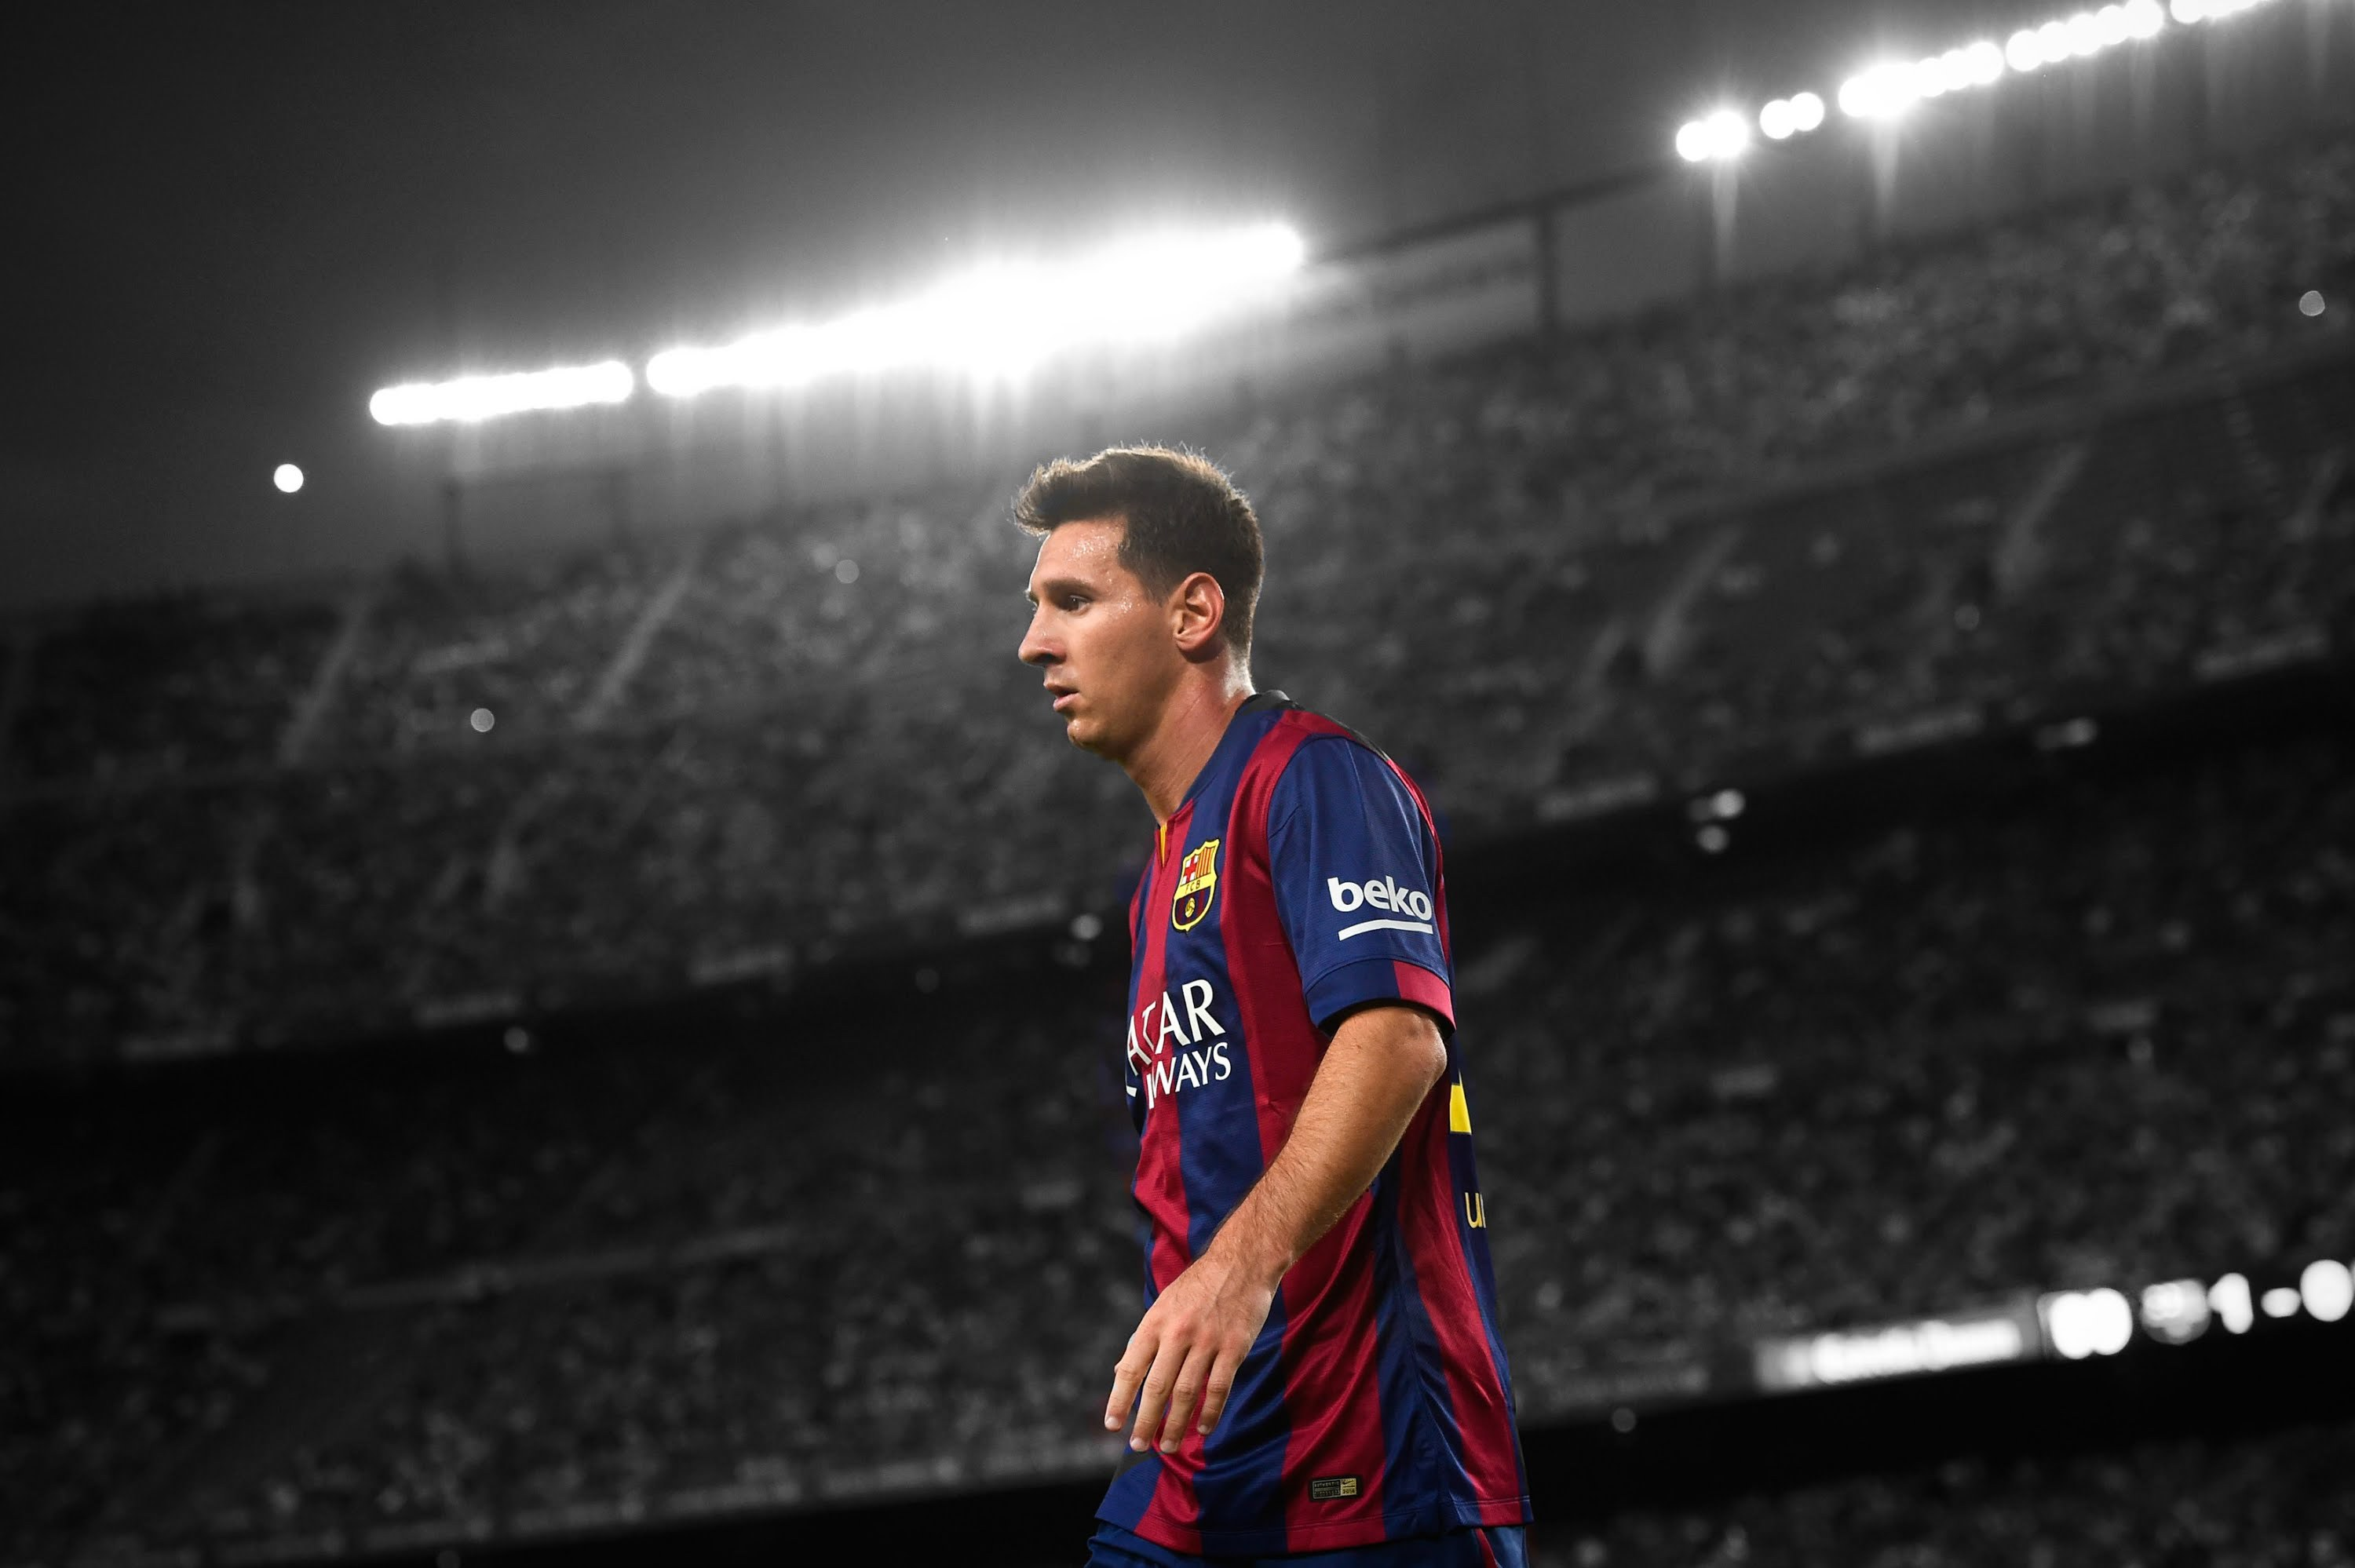 Lionel Messi Wallpaper For Laptop